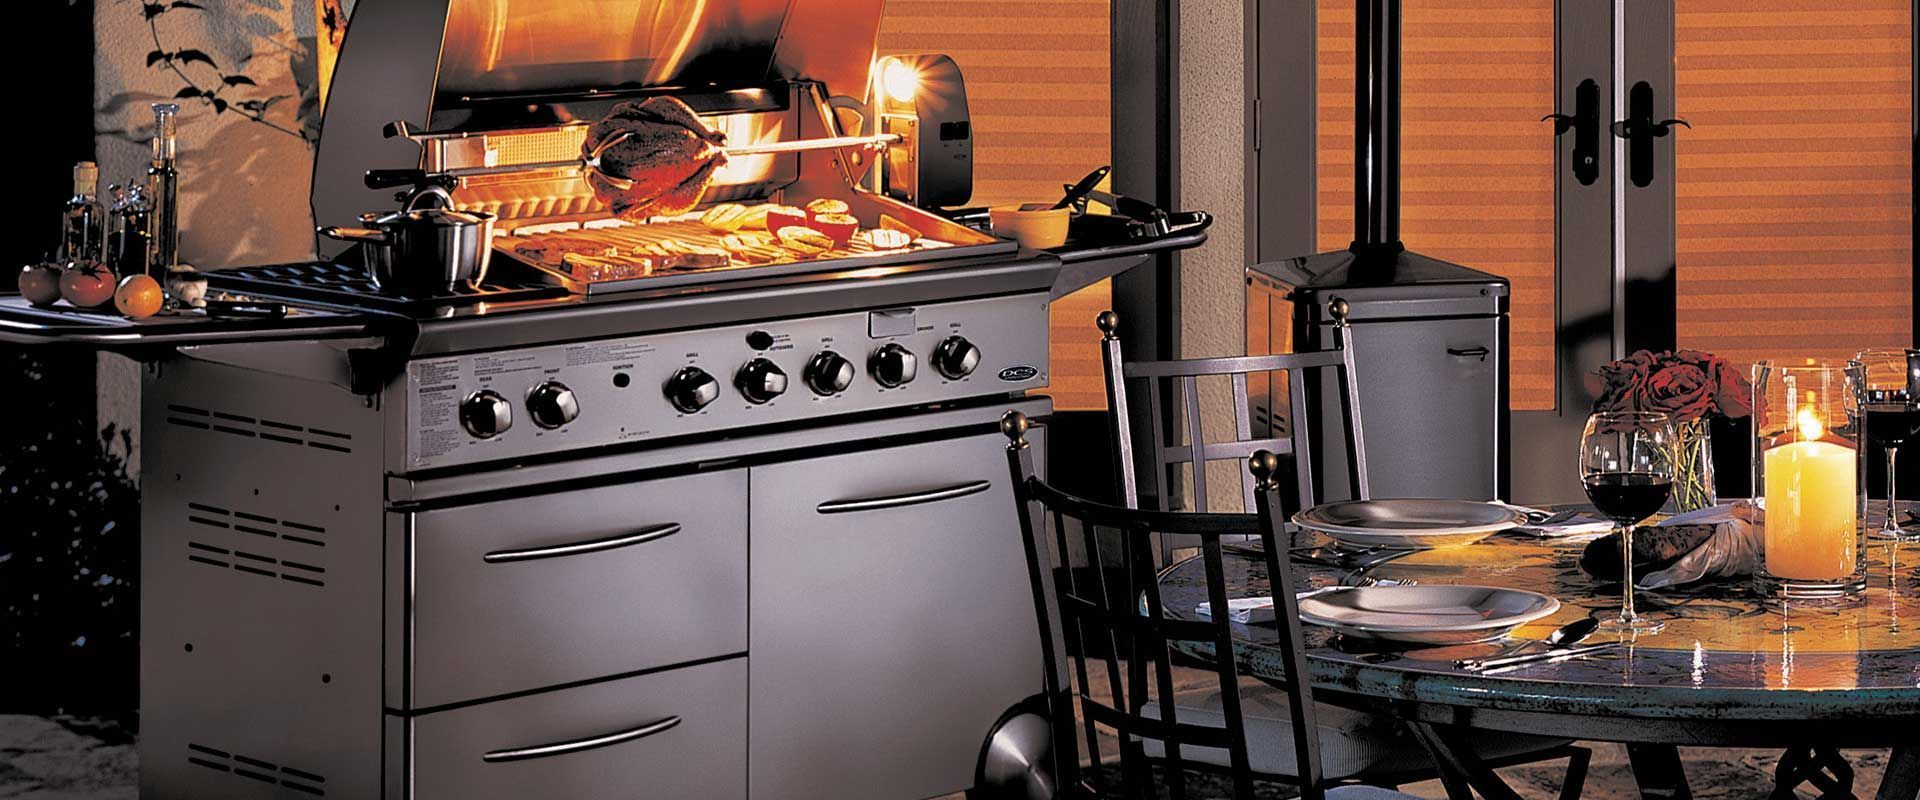 Dcs Grills Provide The Most Amazing Grilling Experience Get Yours Today At Brandster Com Outdoor Kitchen Outdoor Appliances Bbq Grills